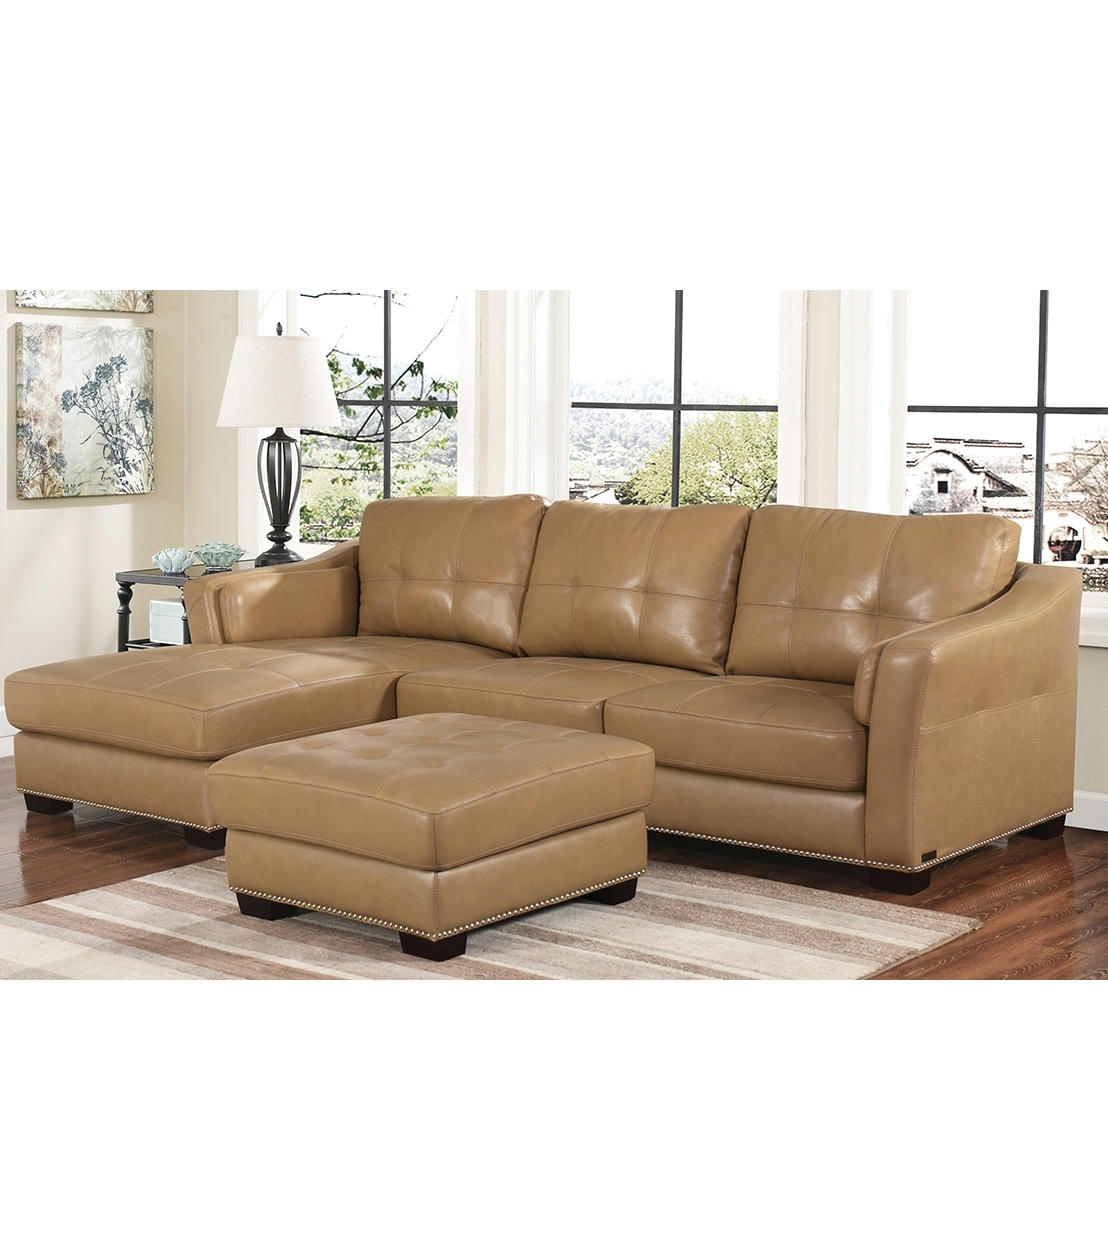 Sectionals : Chelsie Leather Sectional For Preferred Abbyson Sectional Sofas (View 9 of 20)